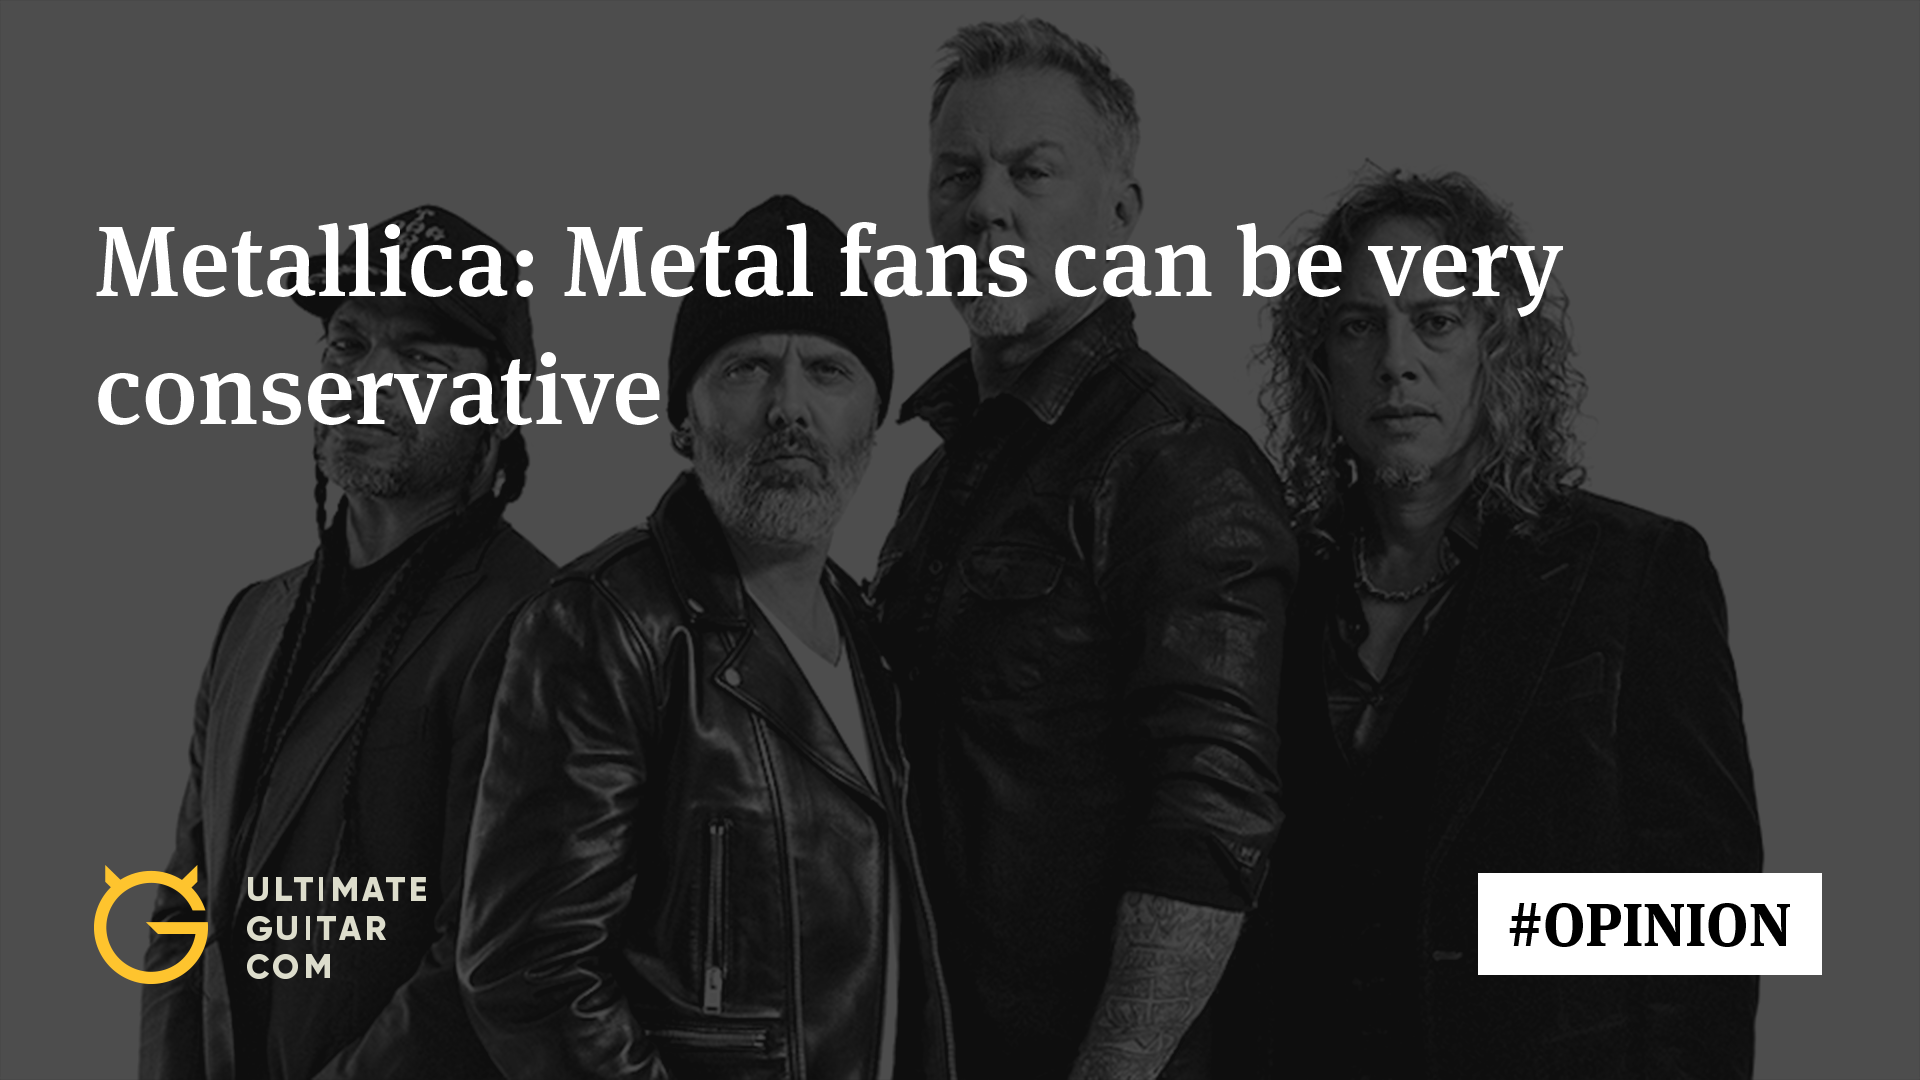 Metallica: Rock & Metal Fans Can Be Quite Conservative & Suffocating